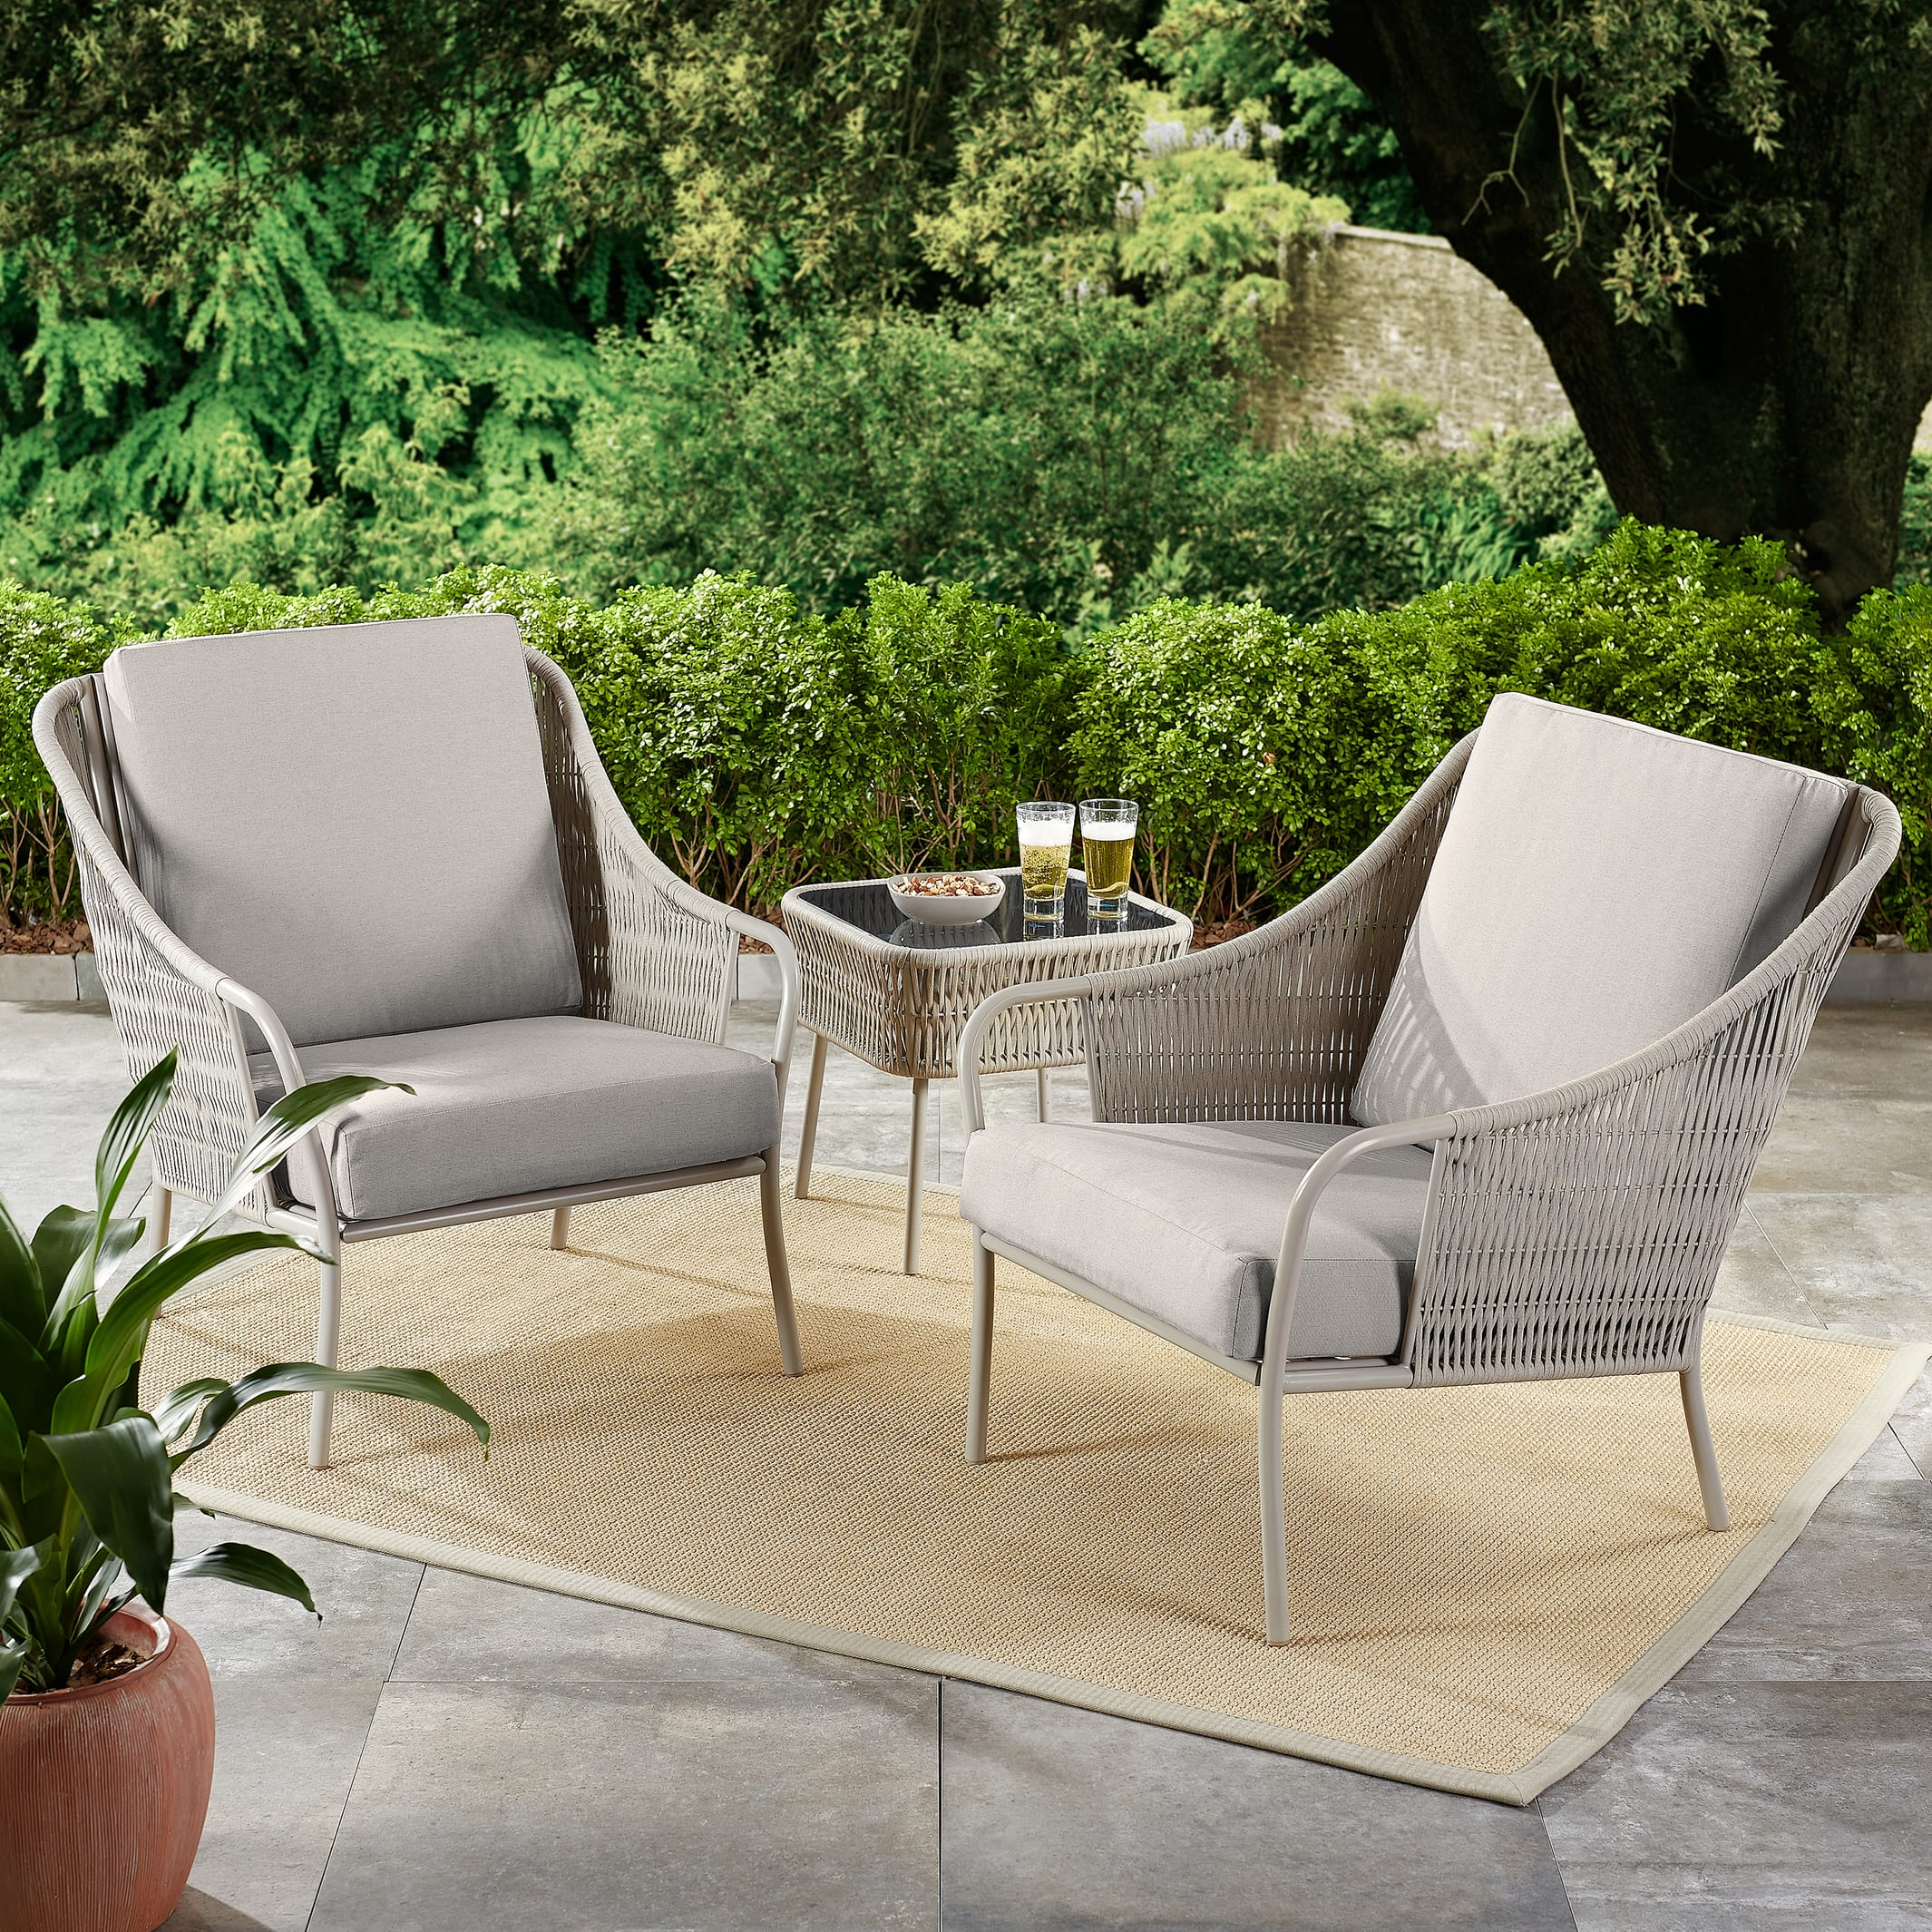 3-Piece Better Homes & Gardens Palomar Patio Woven Chat Set with Gray Cushions $129.97 - Walmart +Free Ship